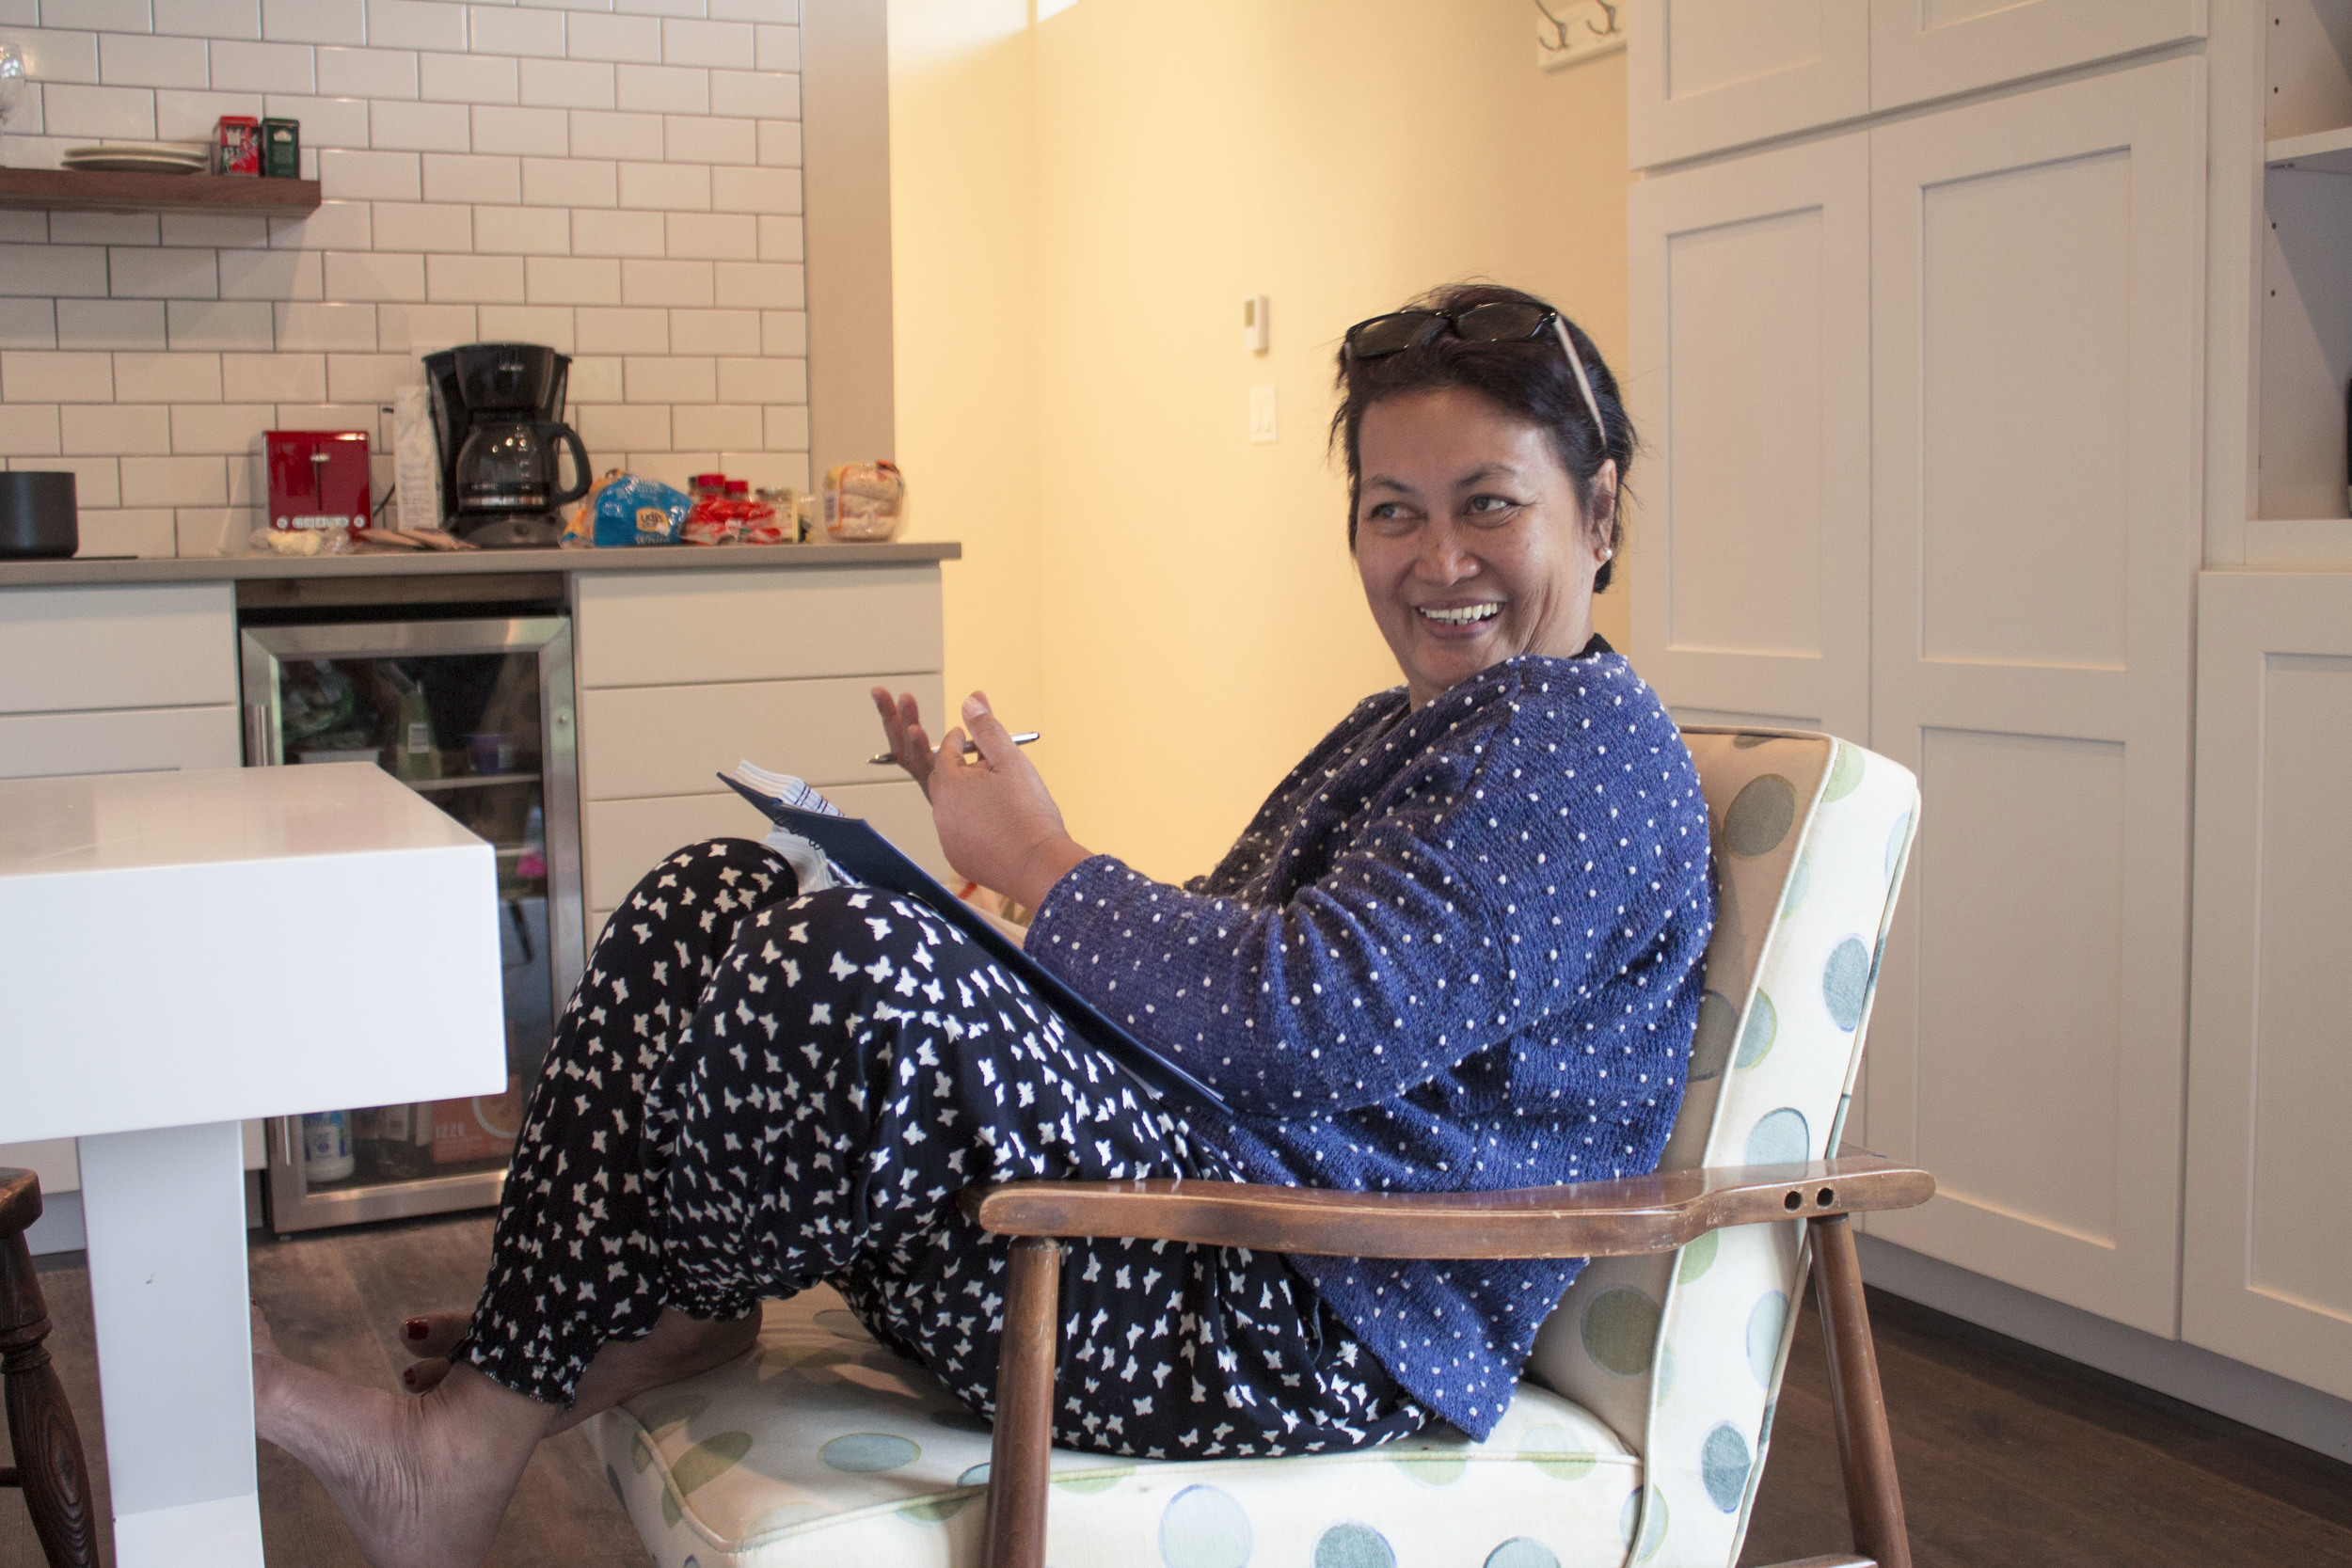 Hope aspires to work on her book during the residency, at least getting a solid start and sorting out the many articles she has written over the years. The time and space to focus on writing her book has been a major challenge as she balances her many roles within her community and family.